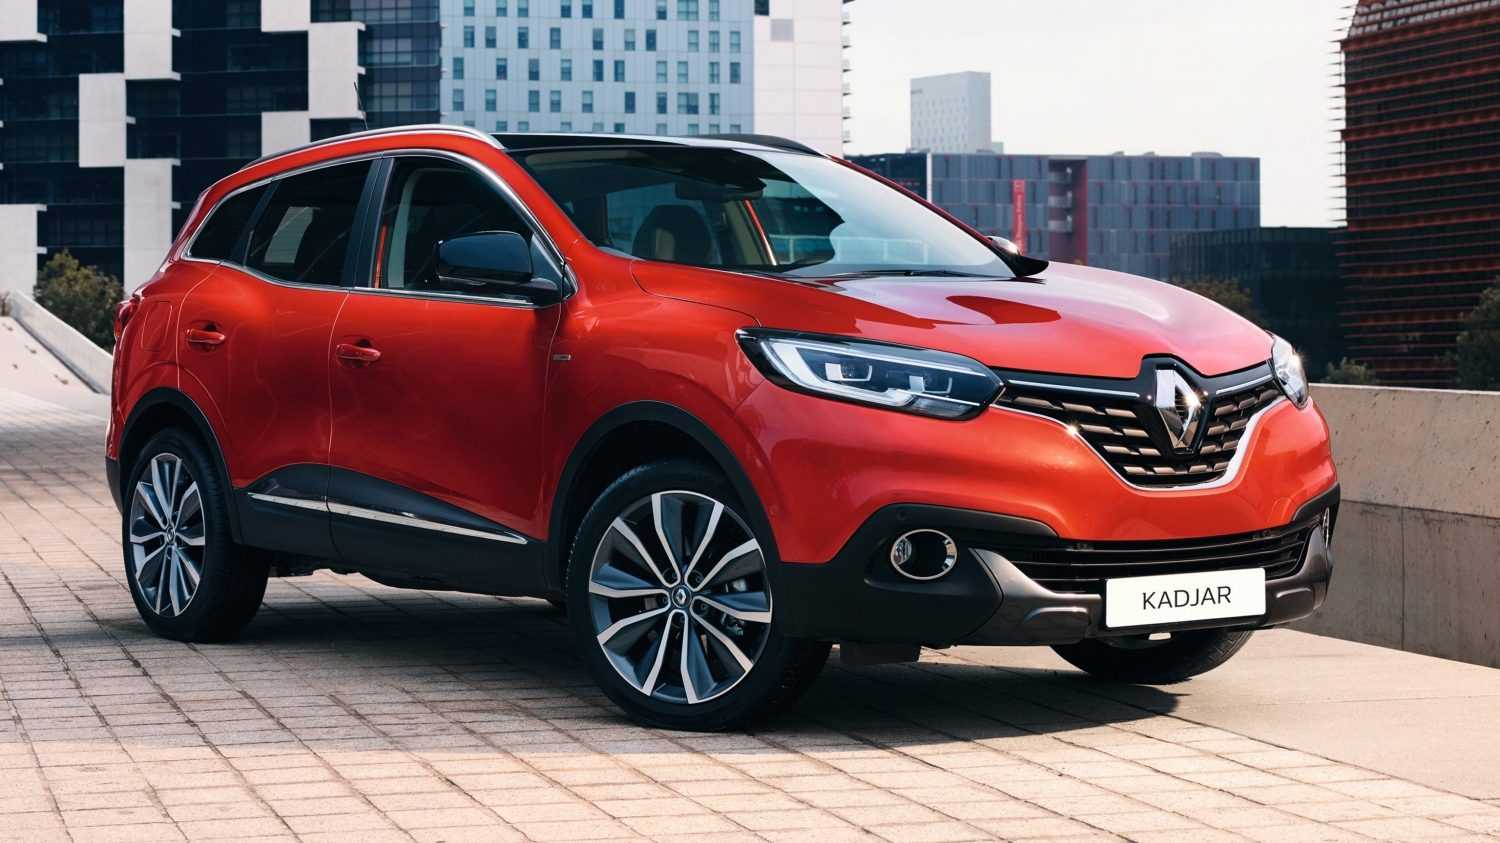 renault kadjar renaultsport to expand suv lineup. Black Bedroom Furniture Sets. Home Design Ideas